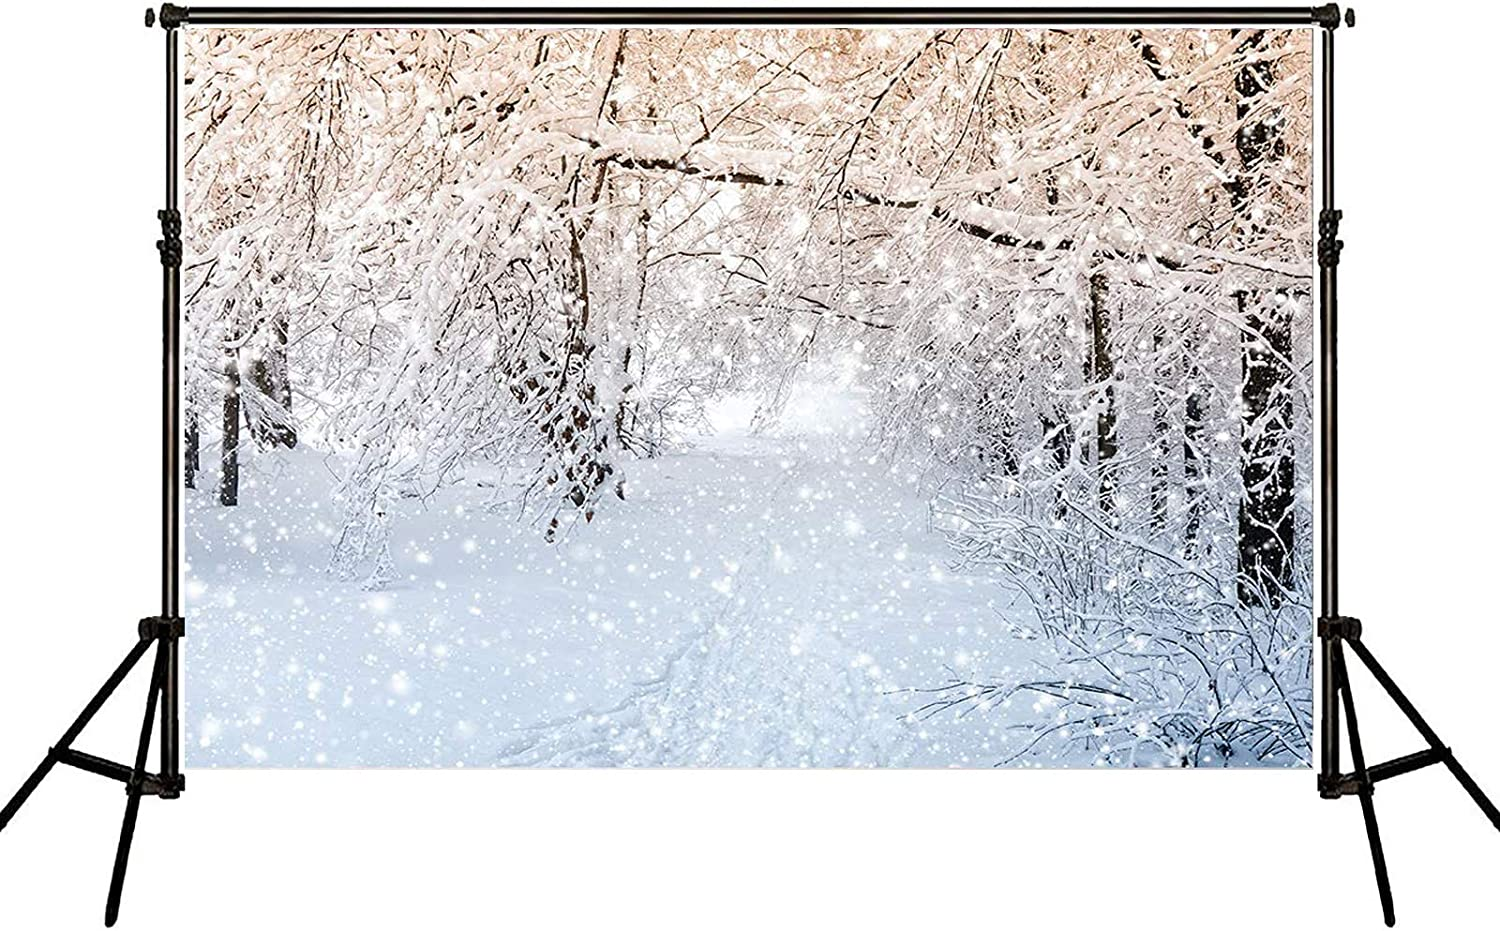 Bephtoer 7x5ft Soft Fabric Winter Froest Wonderland Backdrops for Photography White Frozen Snowflake Christmas Backgrounds Photo Wedding Children Portrait Background Shooting